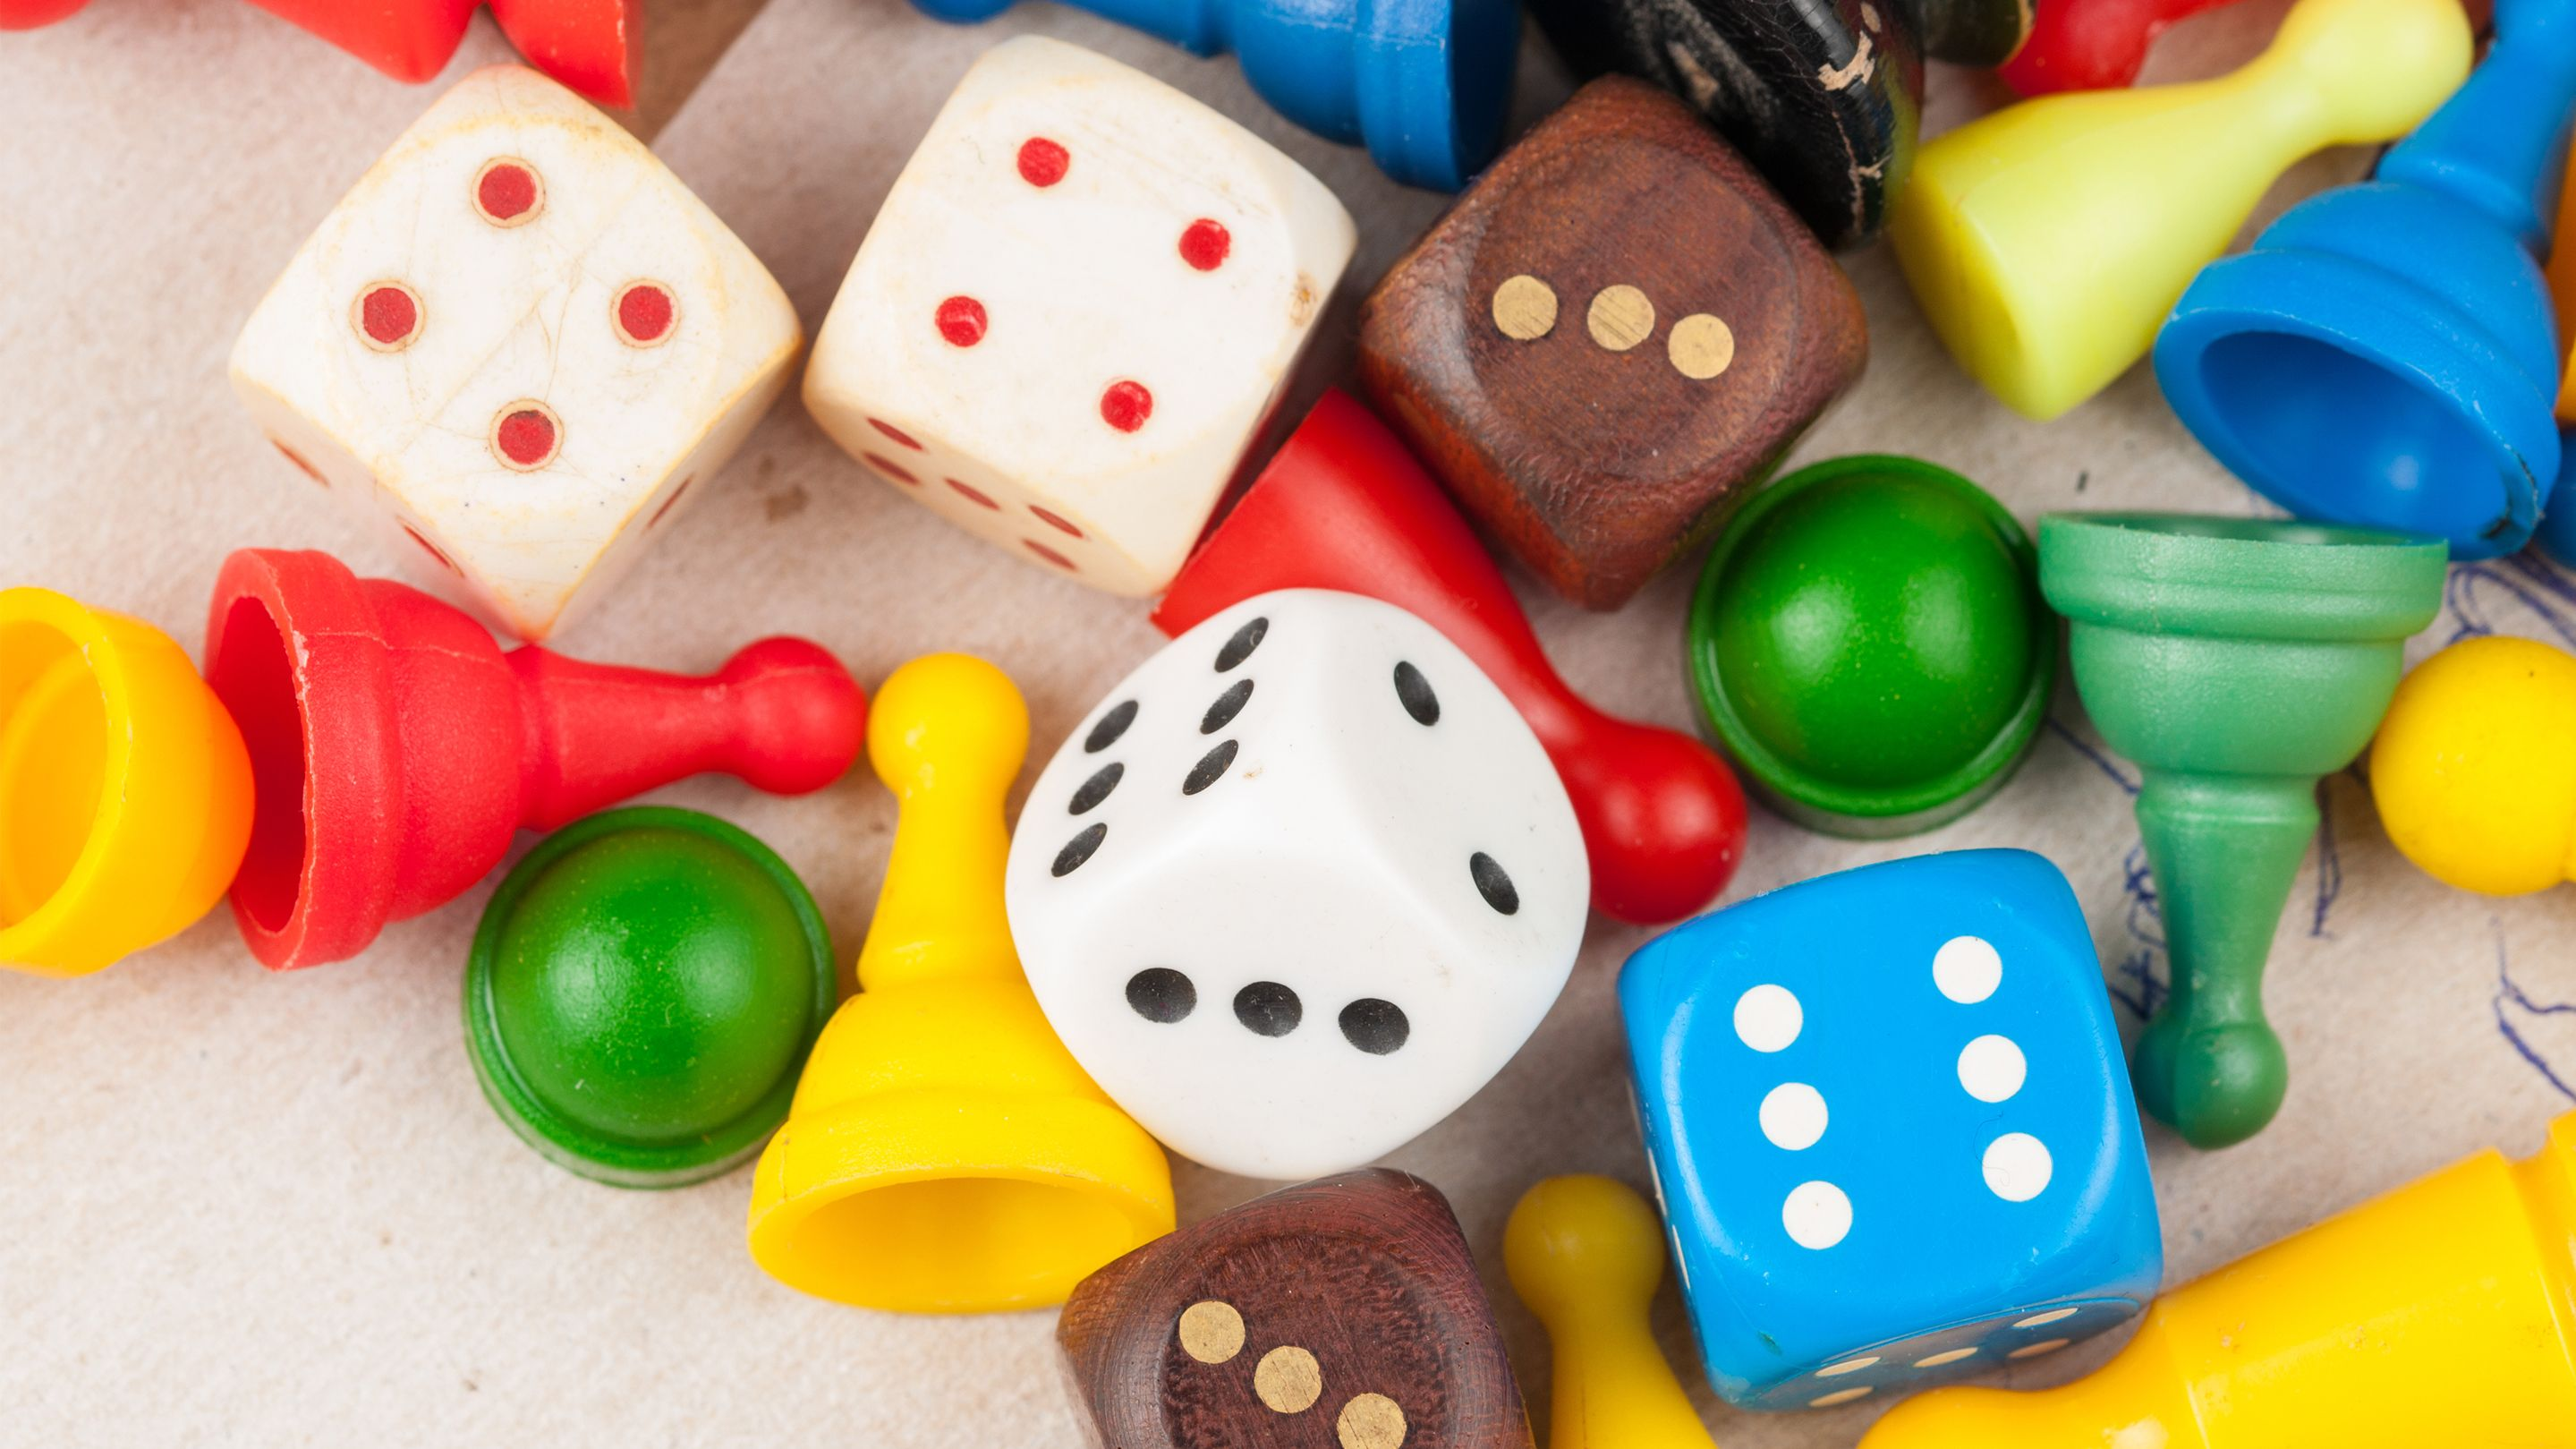 Does Our Natural Affinity for Games Have a Place in the Classroom?